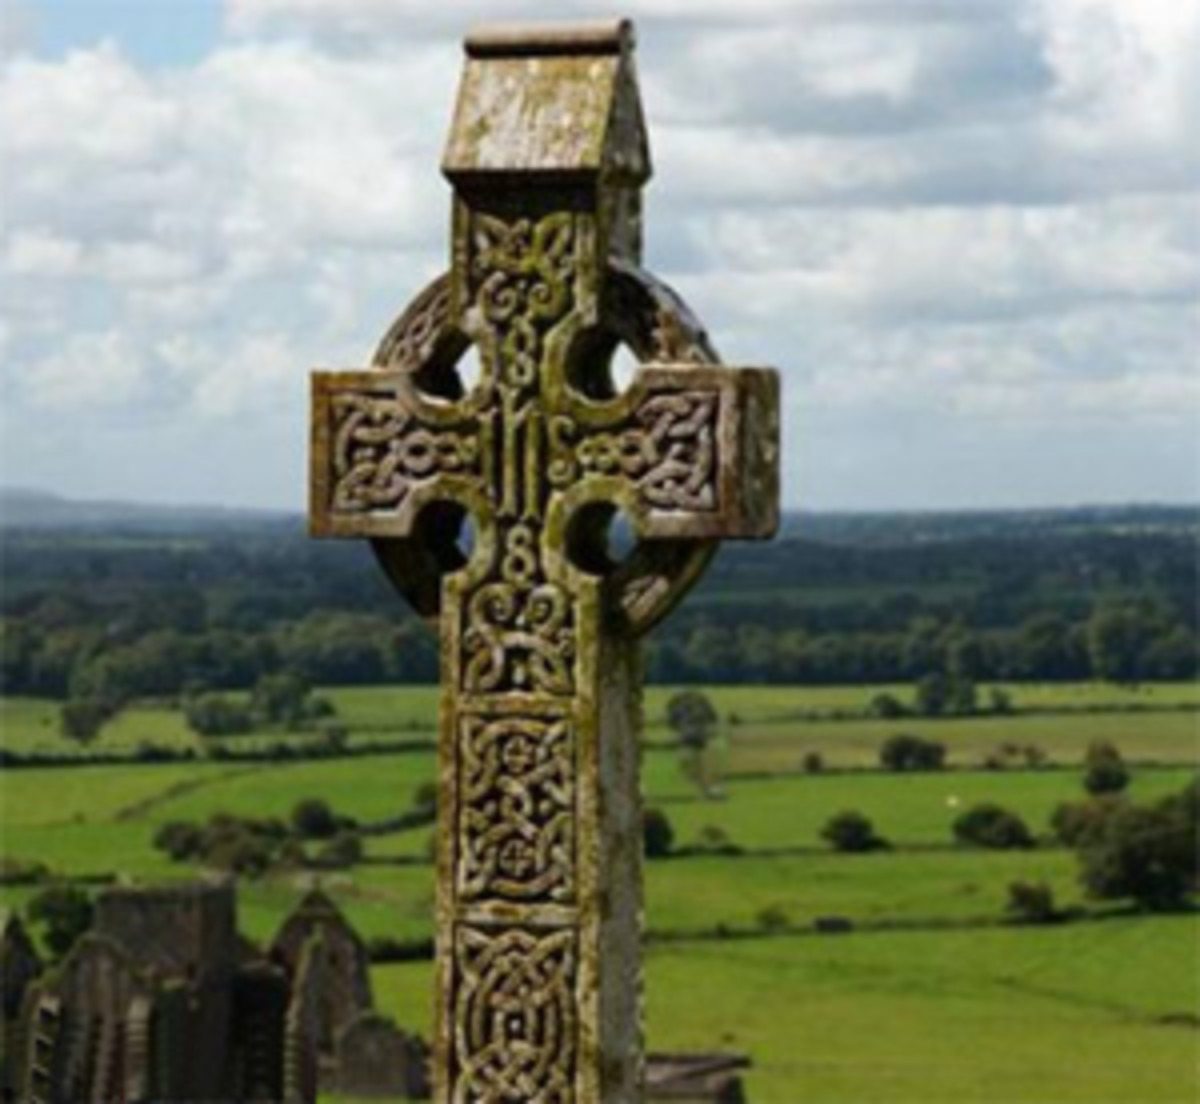 Celtic stone cross in Ireland from the days of Christianity.